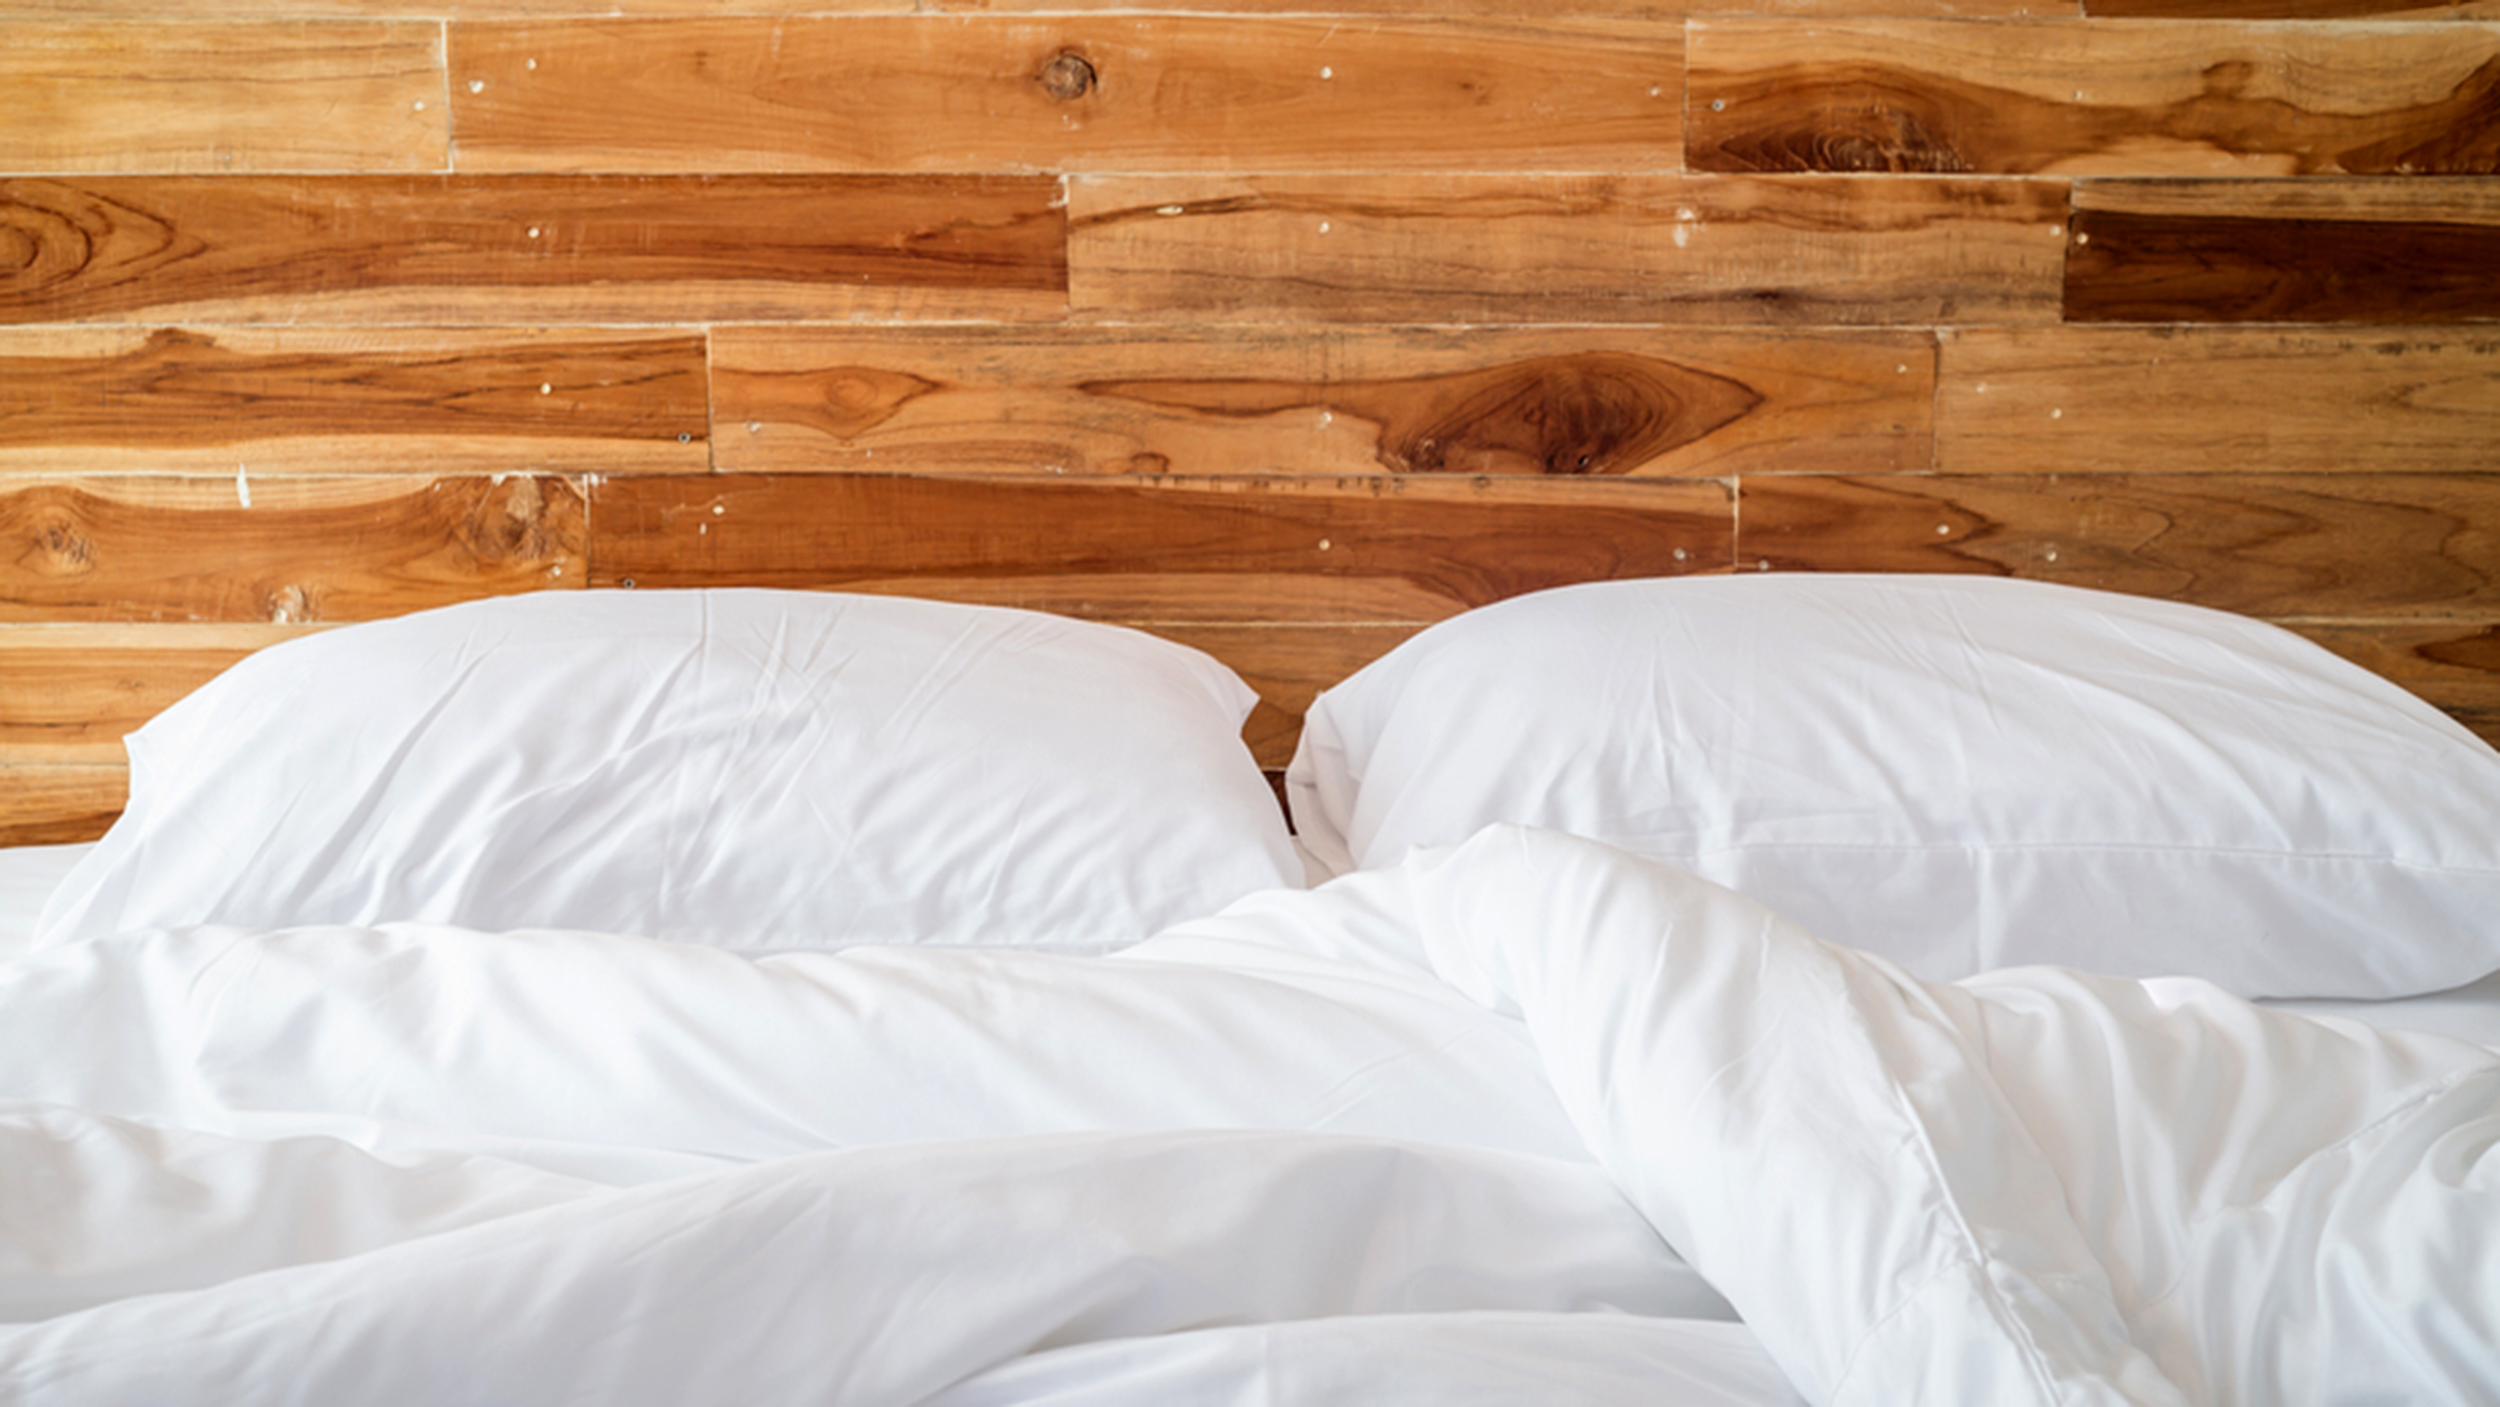 self cleaning sheets do exist silvon launches bacteria resistant bedding. Black Bedroom Furniture Sets. Home Design Ideas